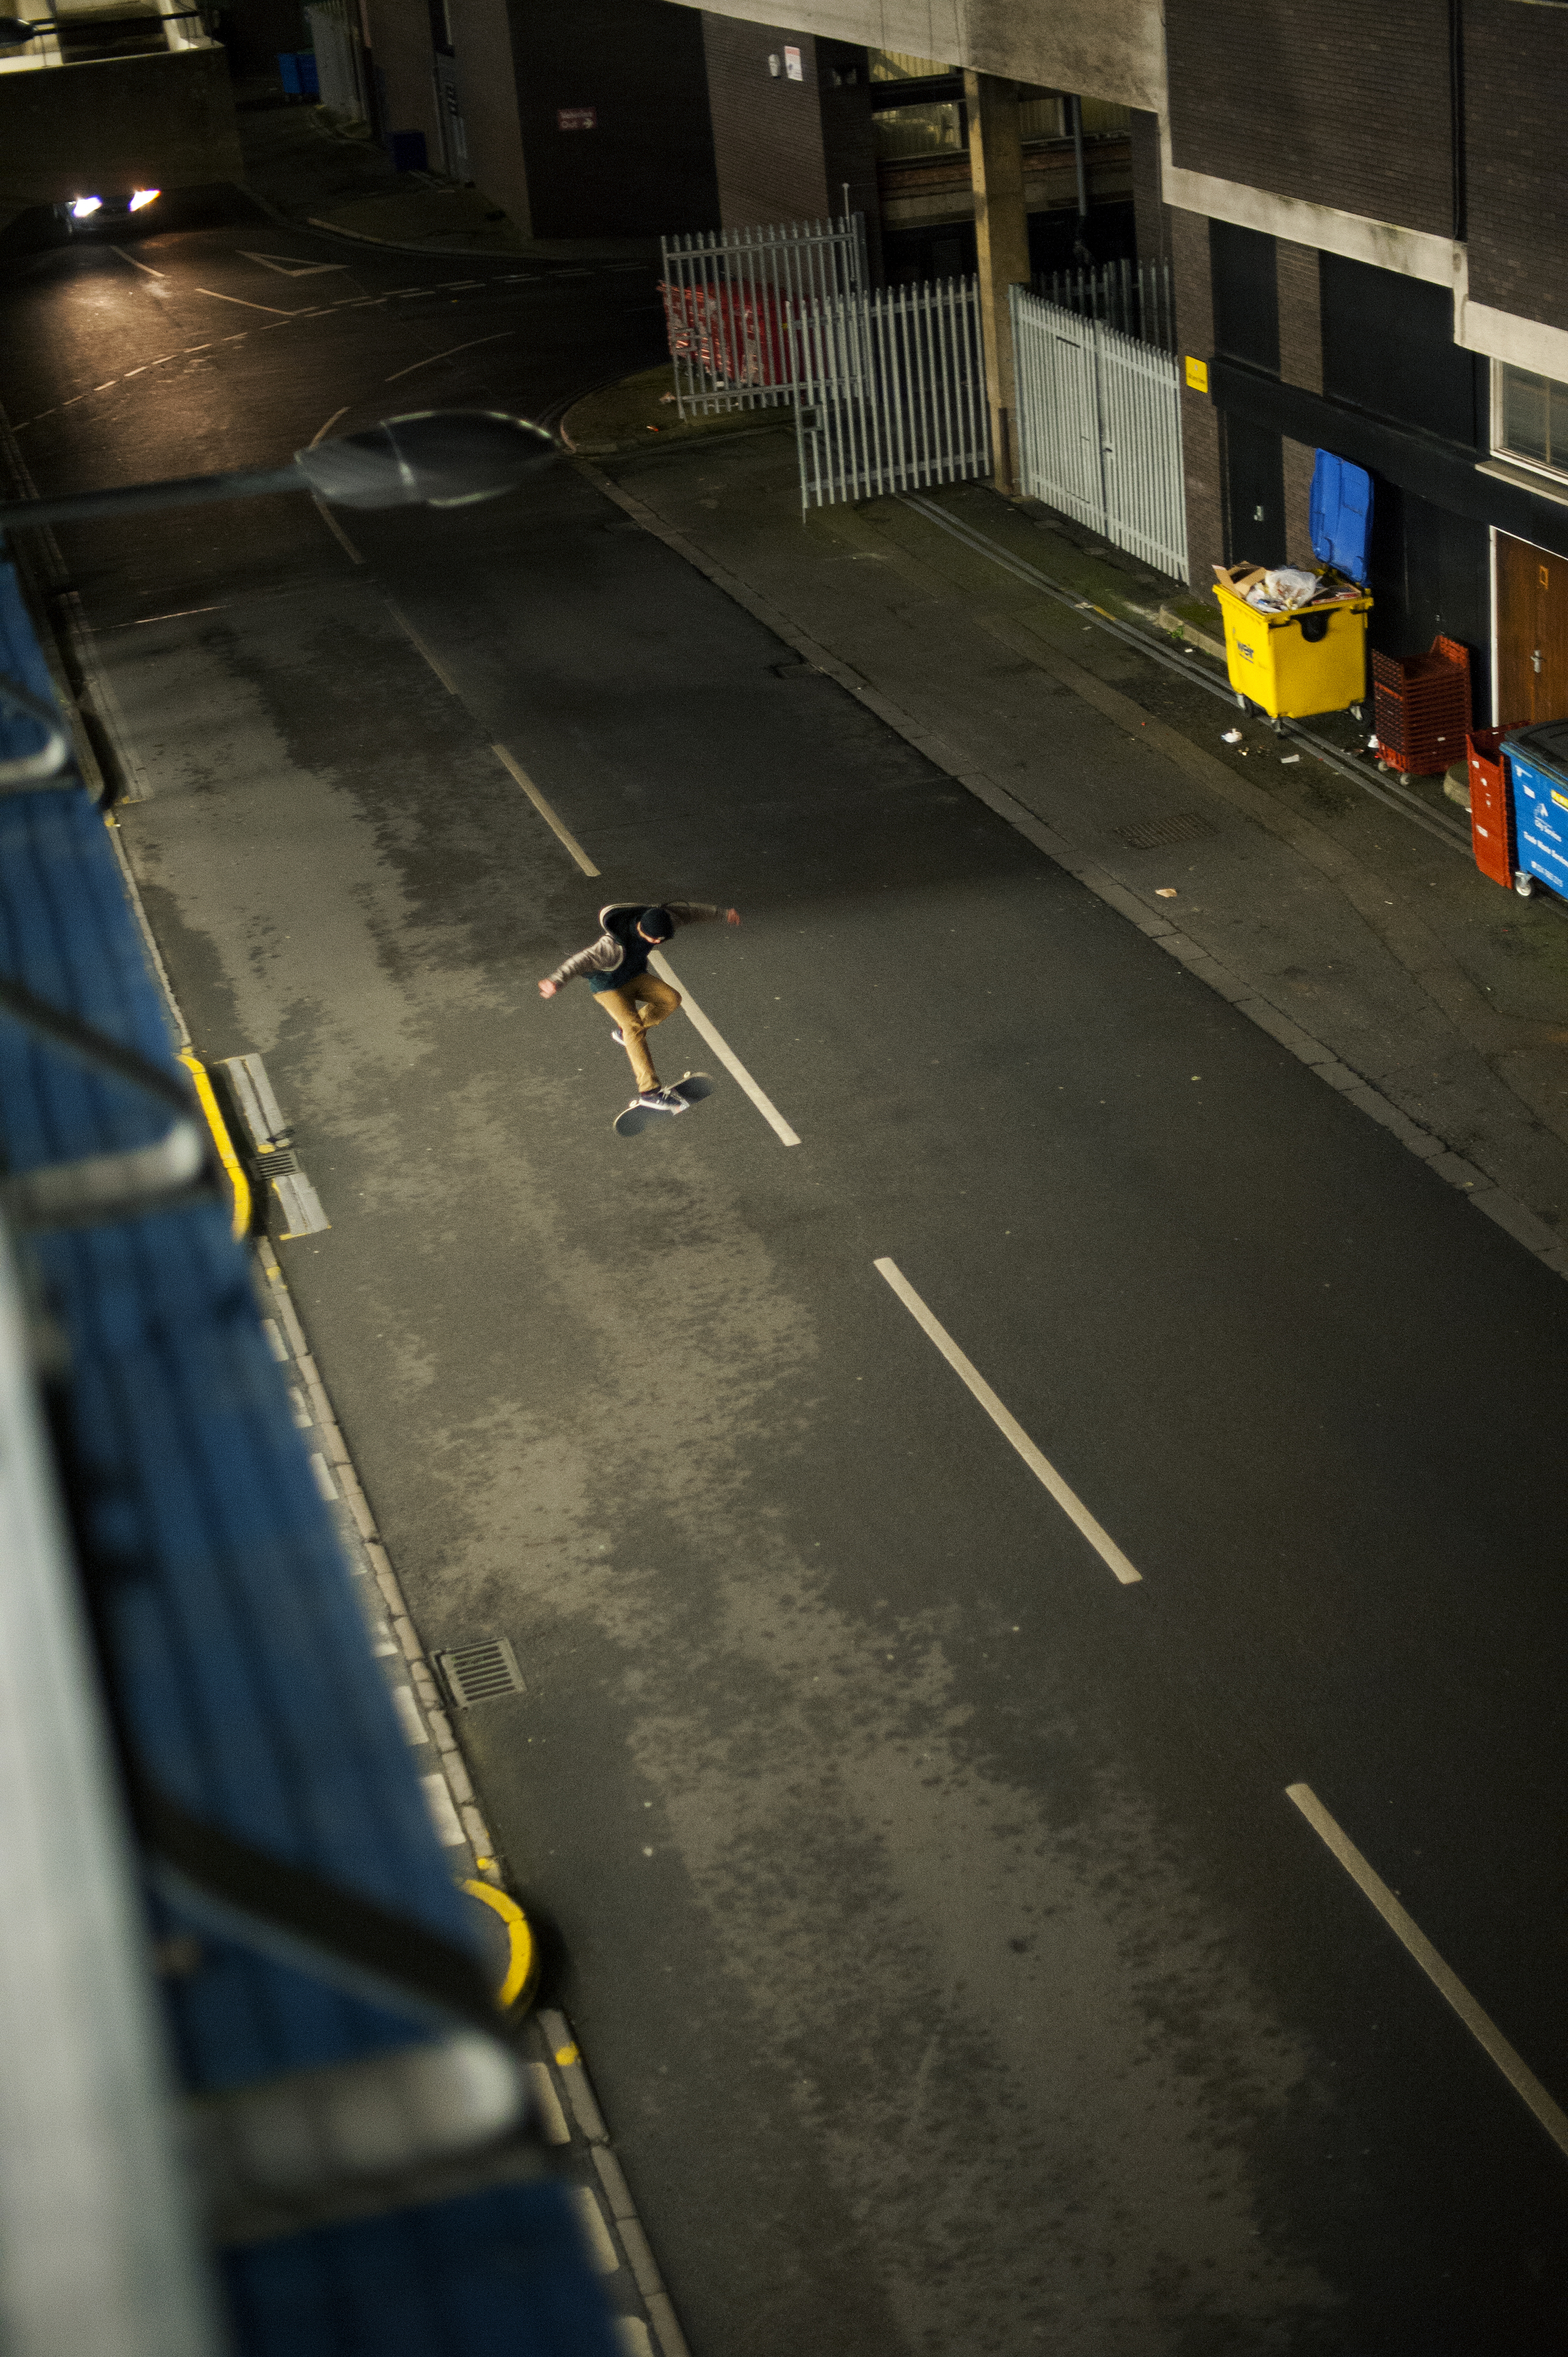 From the series   Confinement of Skateboarding